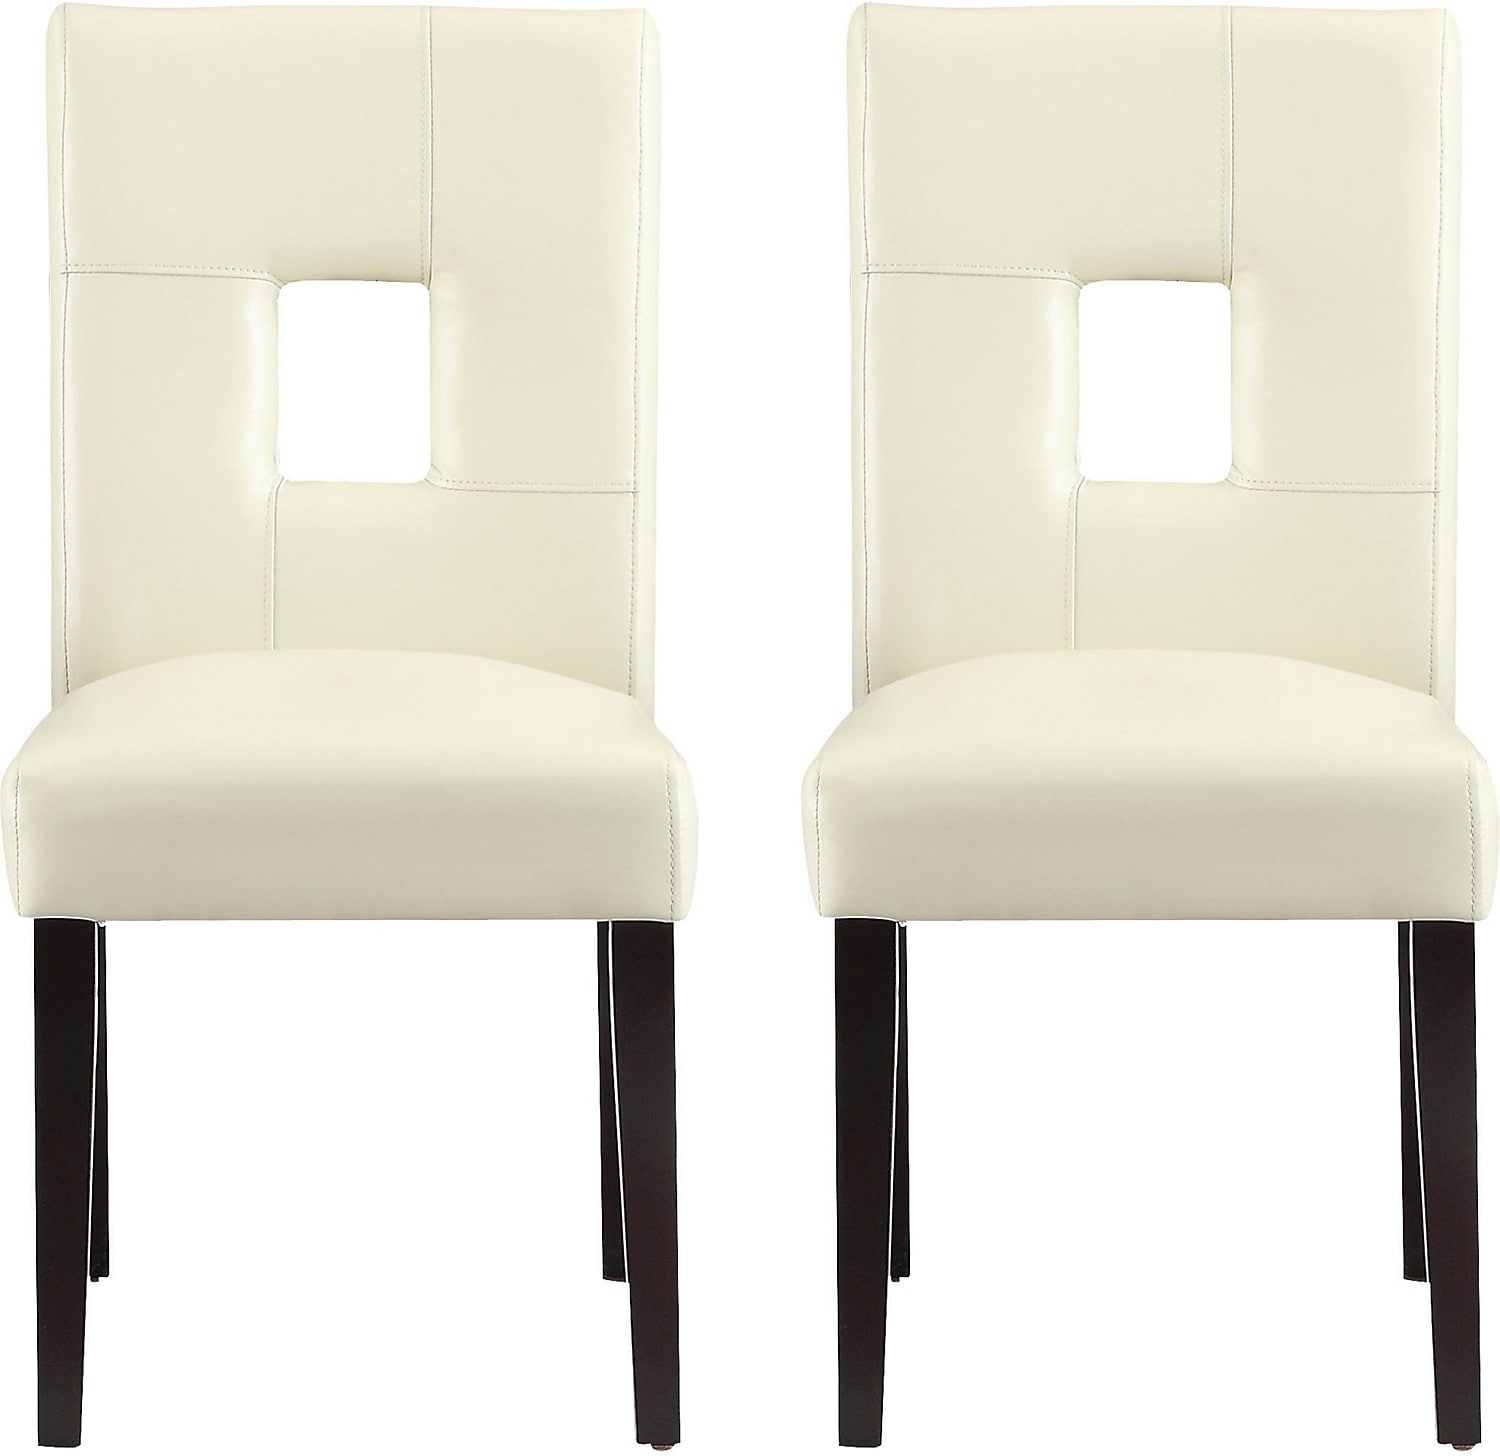 Dining Room Furniture - McKenna 2-Piece Dining Chairs - White